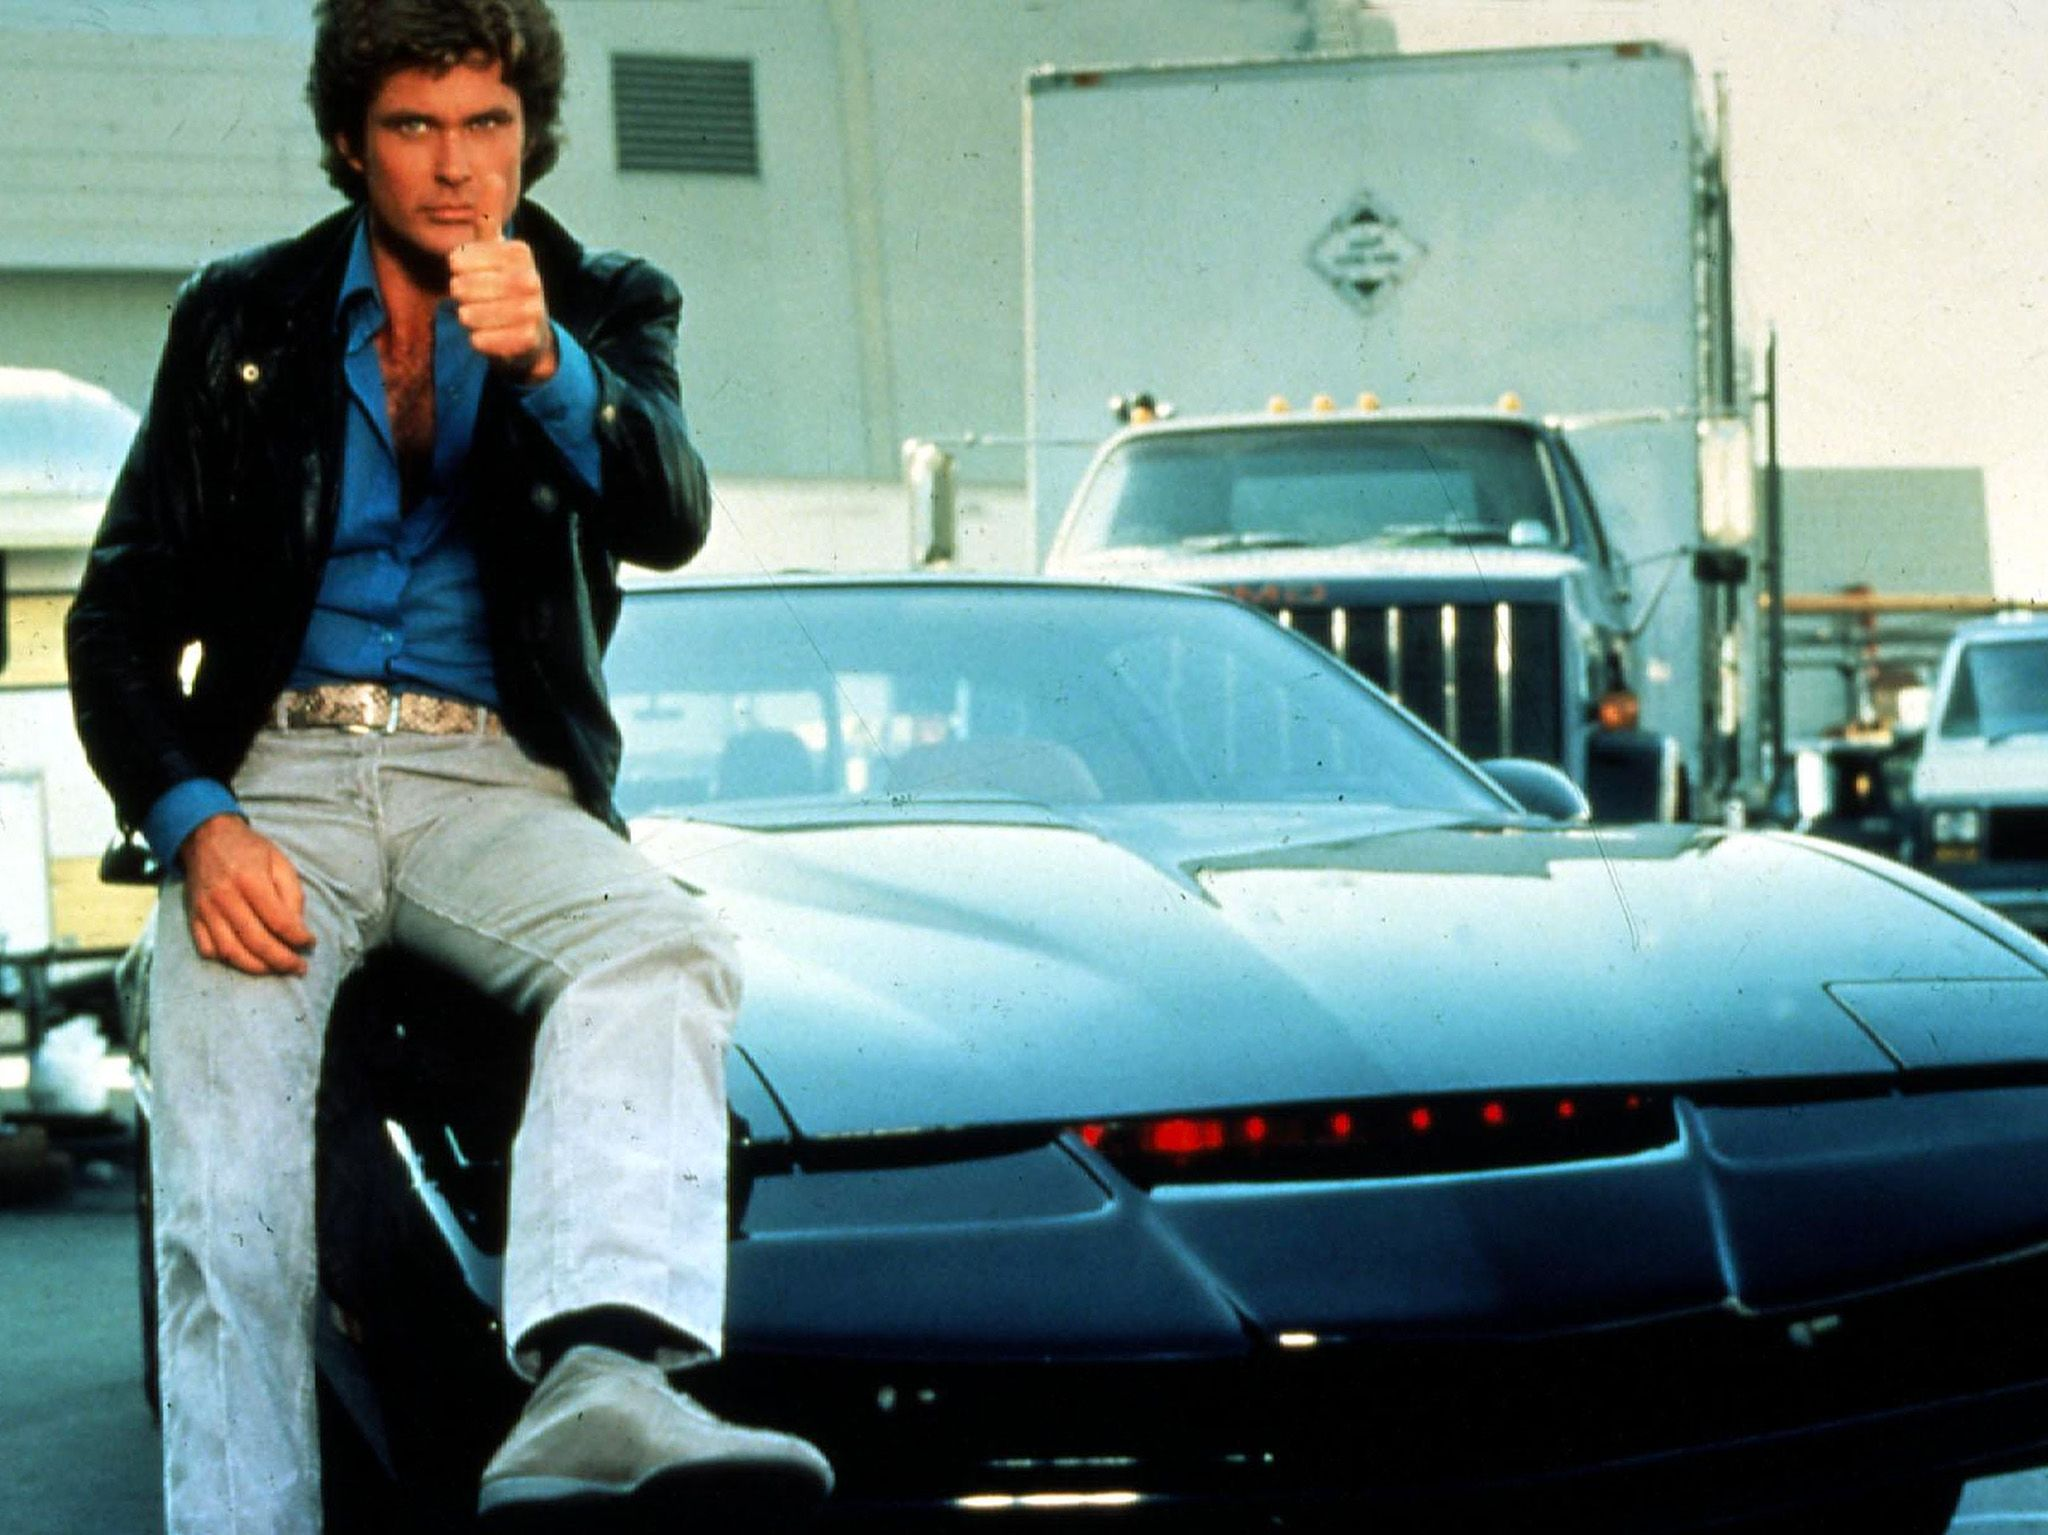 David Hasselhoff in Knight Rider. This image is from Decades Remixed: The '80s Greatest. [Photo of the day - October 2018]